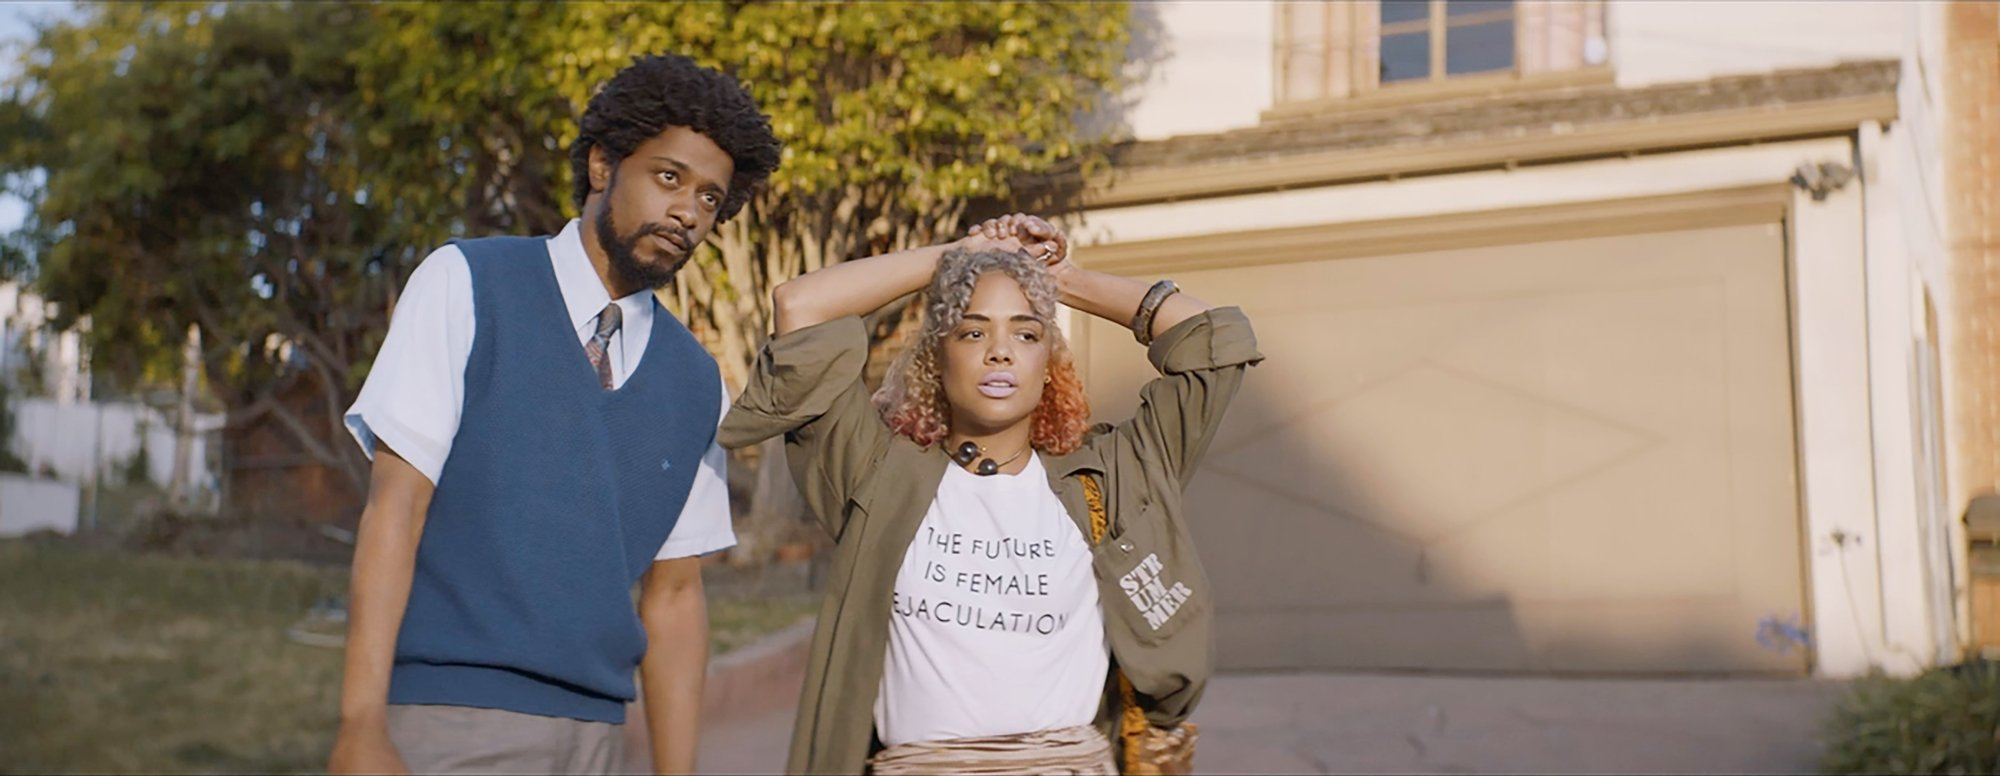 Keith Stanfield stars as Cassius 'Cash' Green and Tessa Thompson stars as Detroit in Annapurna Pictures' Sorry to Bother You (2018)